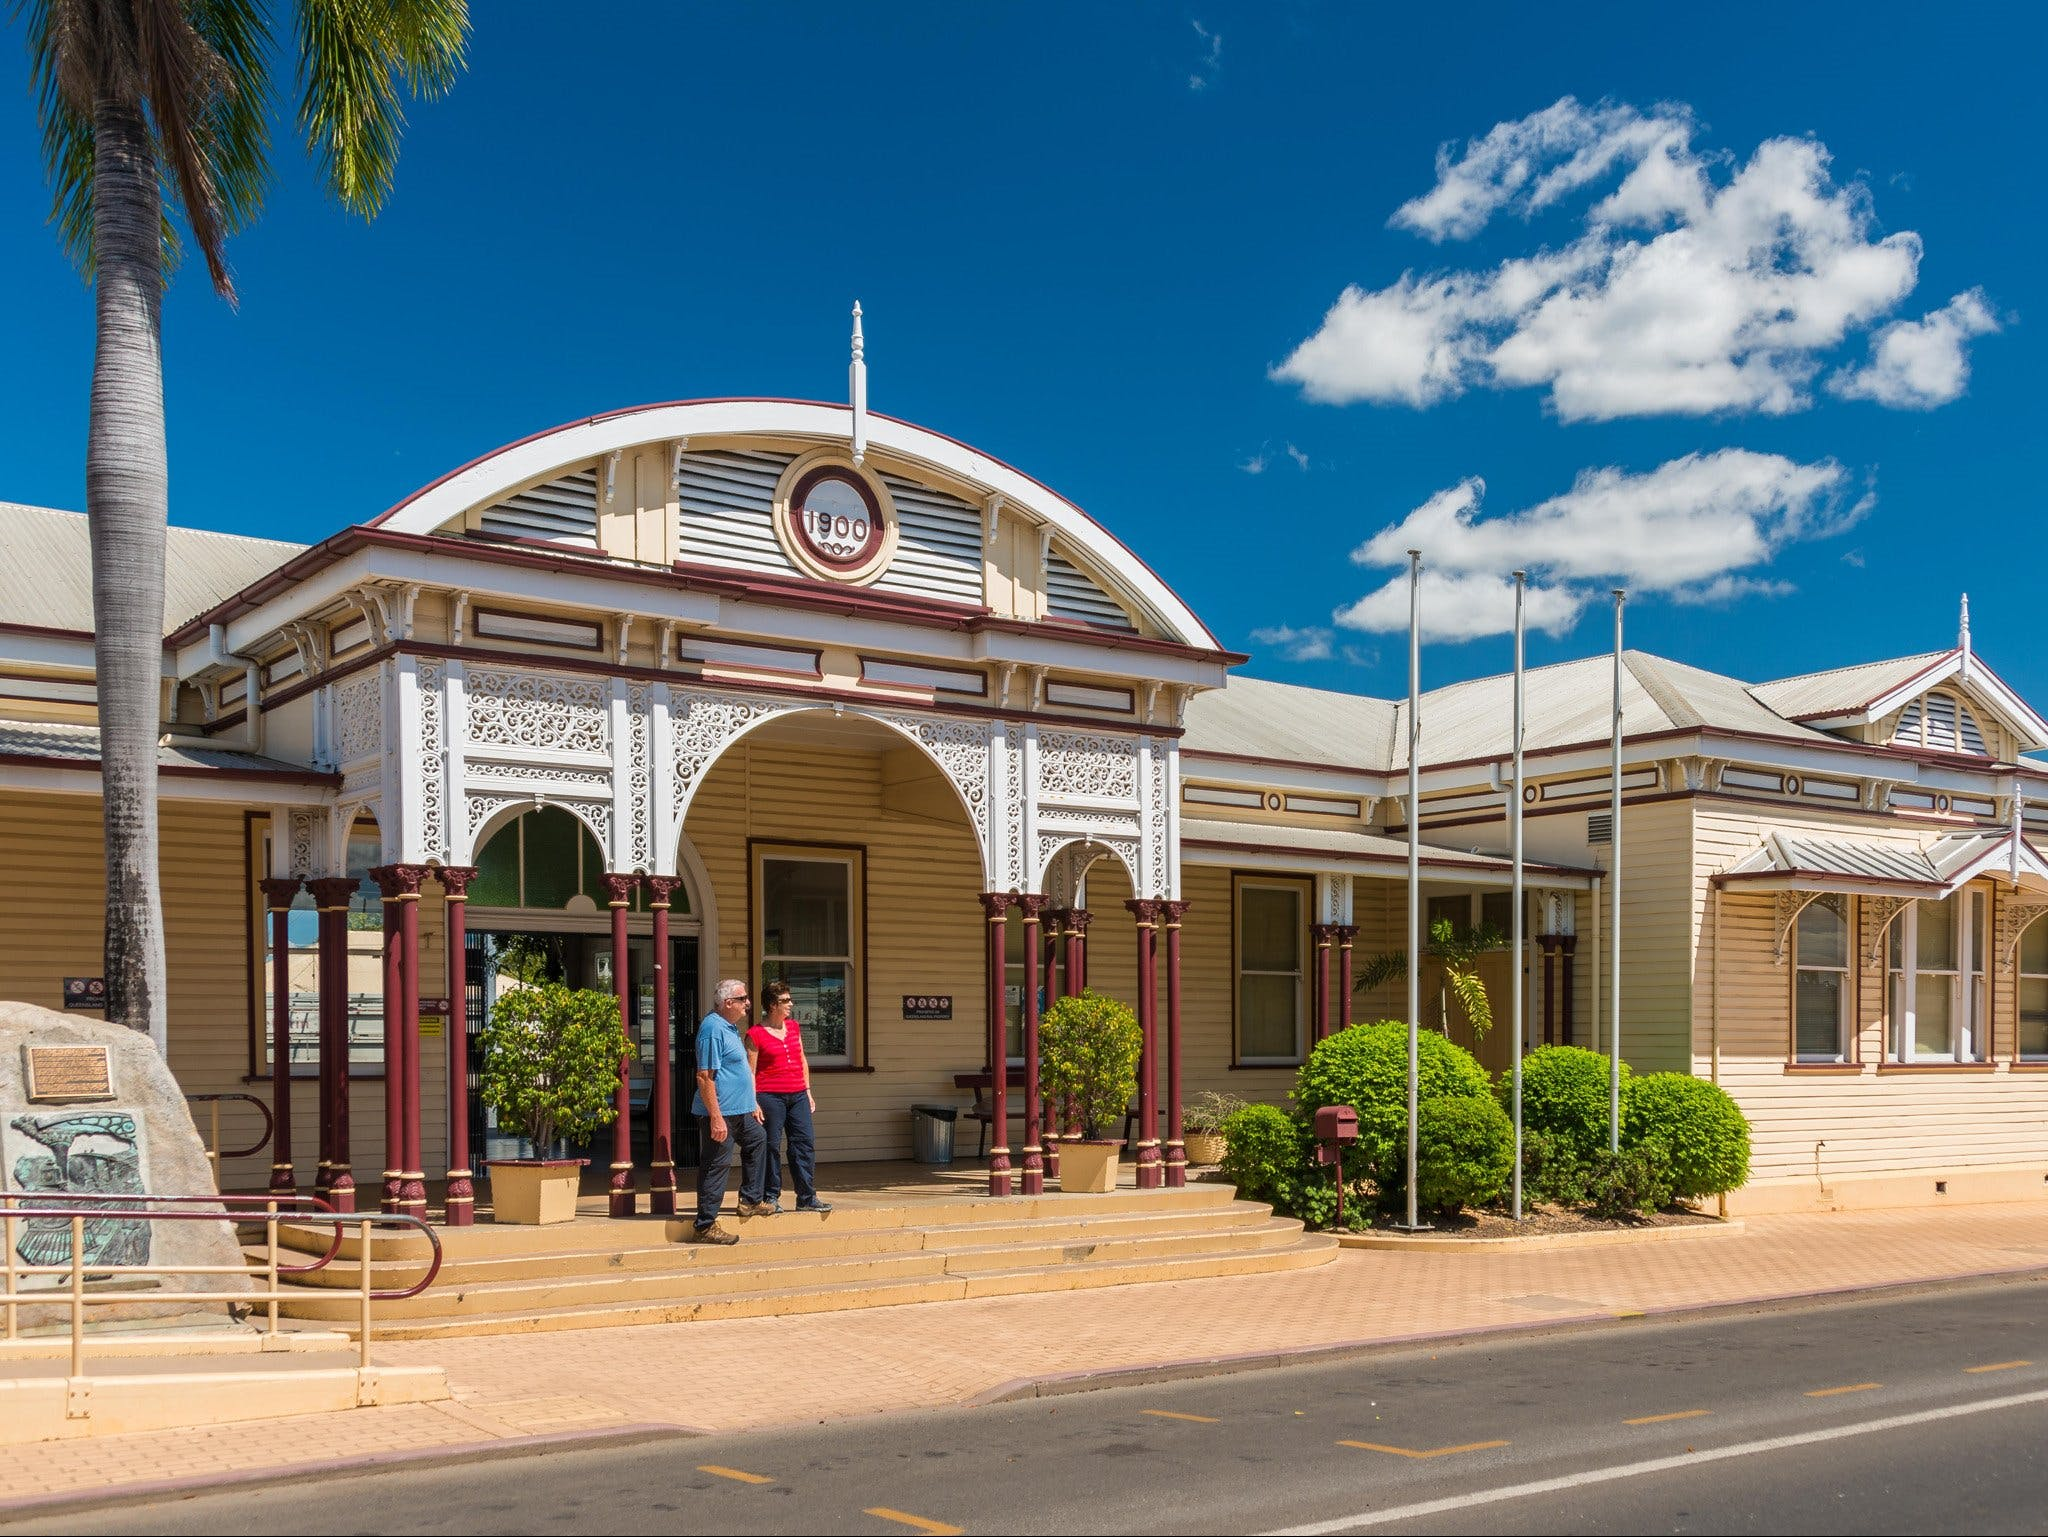 Emerald Historic Railway Station - Find Attractions